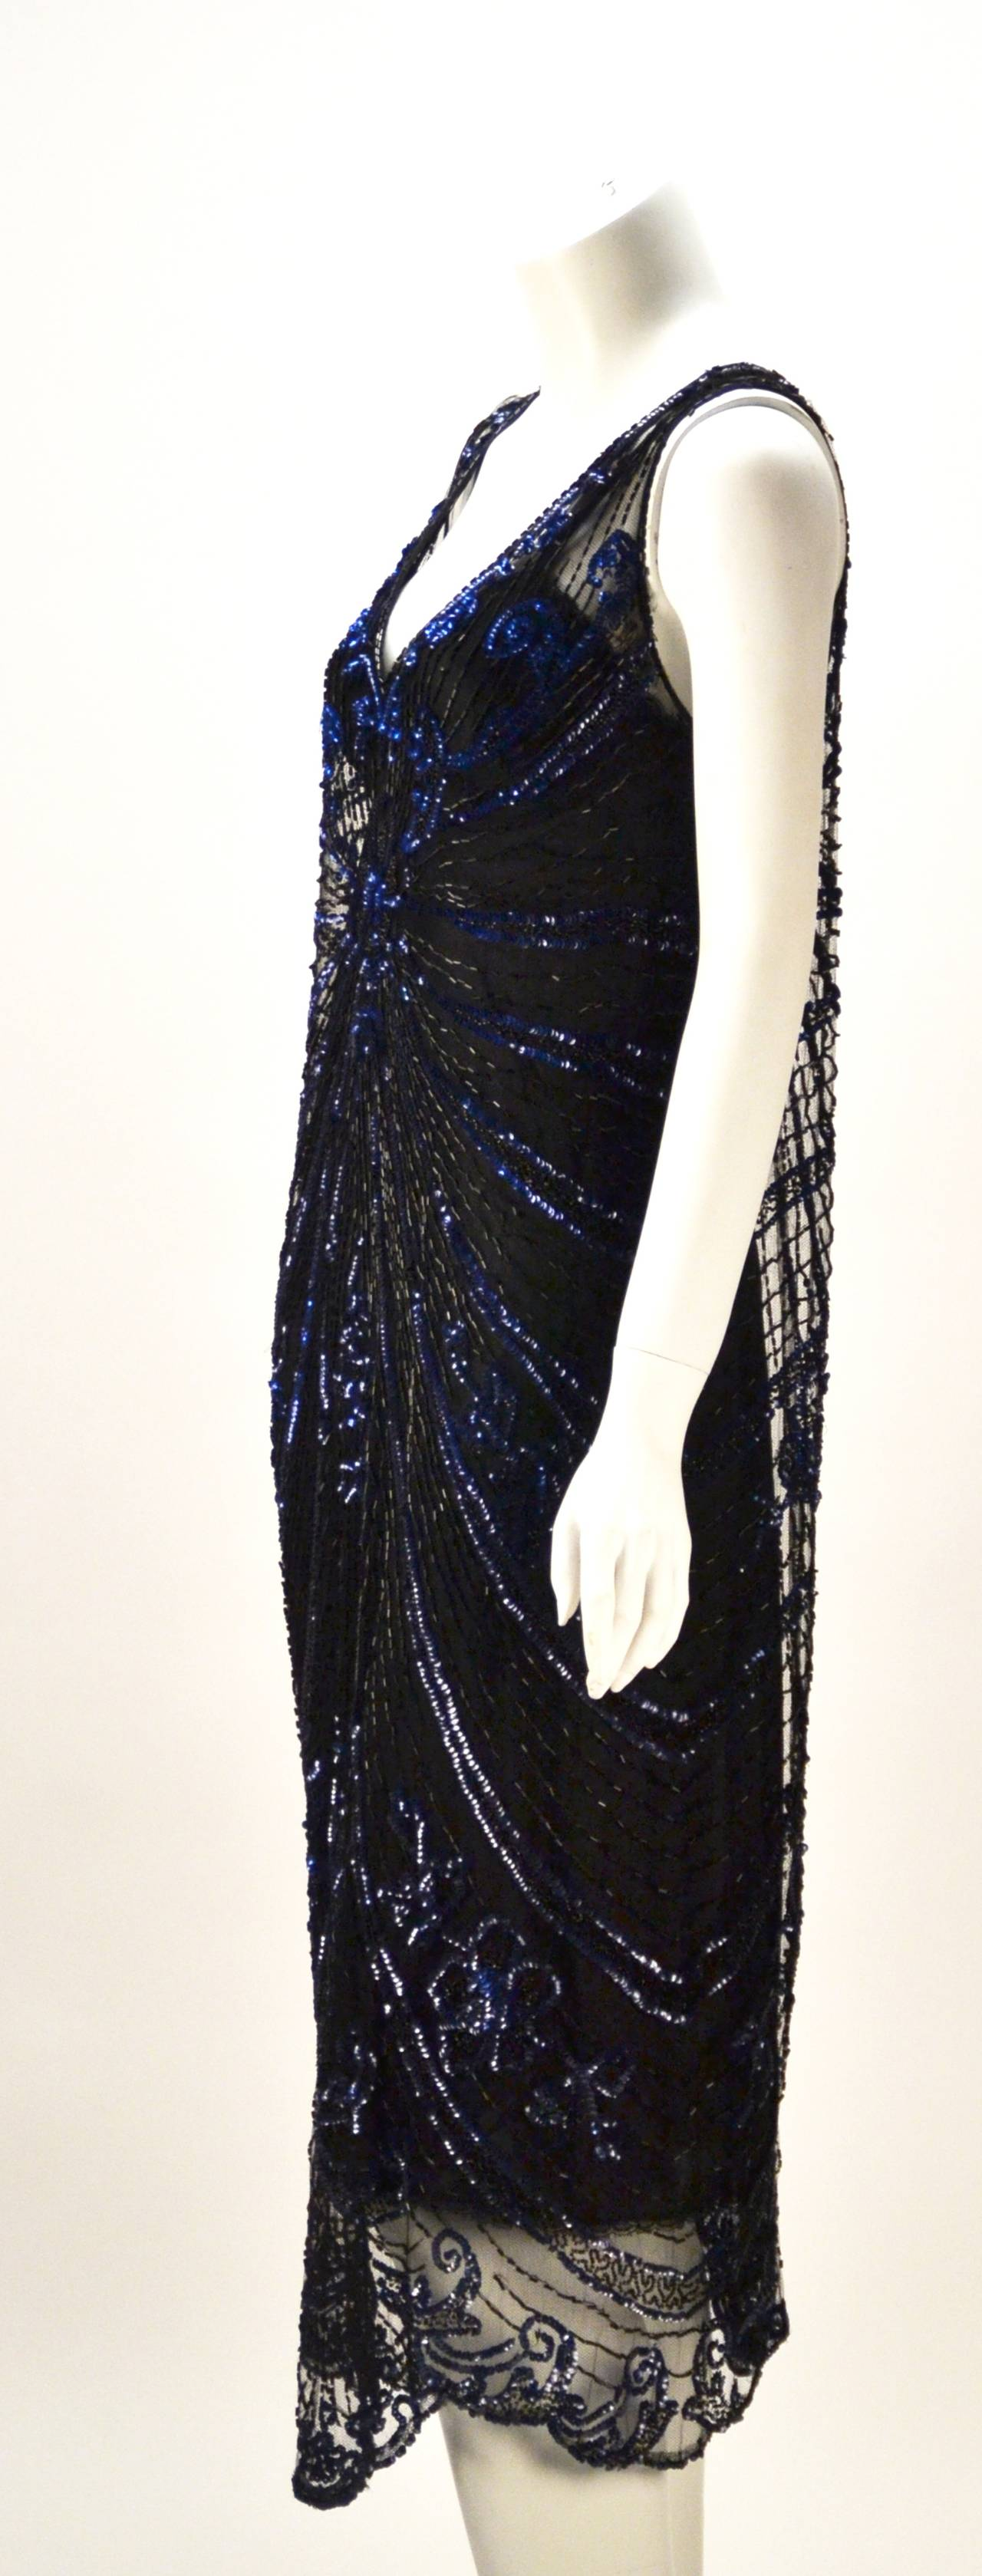 Awesome 1920's net sleeveless black and blue sequin and bugle beaded flapper dress! This dress marks the essence of beauty and luxury during the Art Deco era with exquisite beading and sequins and sculpted skirt hem. The beading and sequins form a